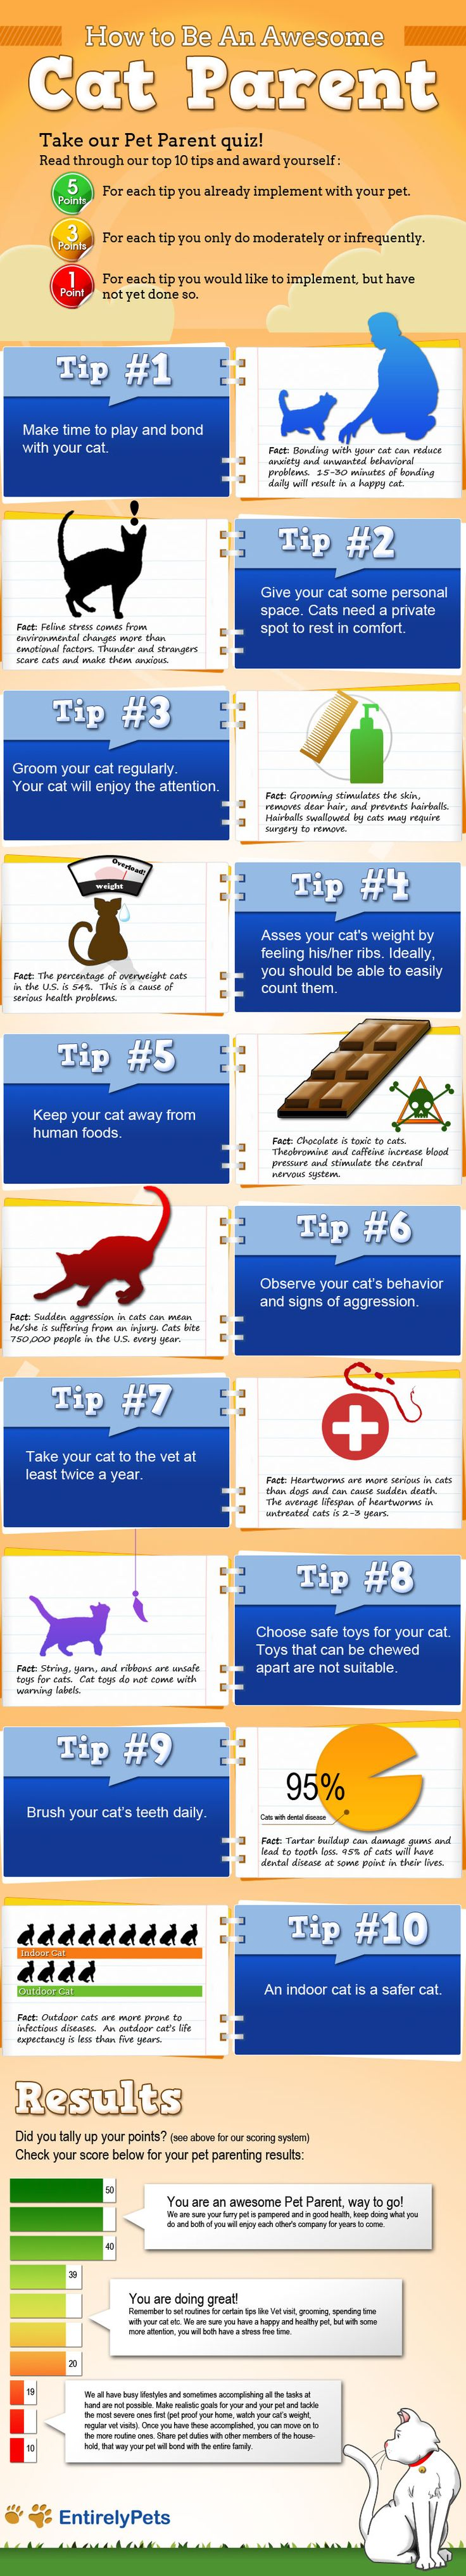 How To Be An Awesome Cat Parent   #infographic #HowTo #CatParent